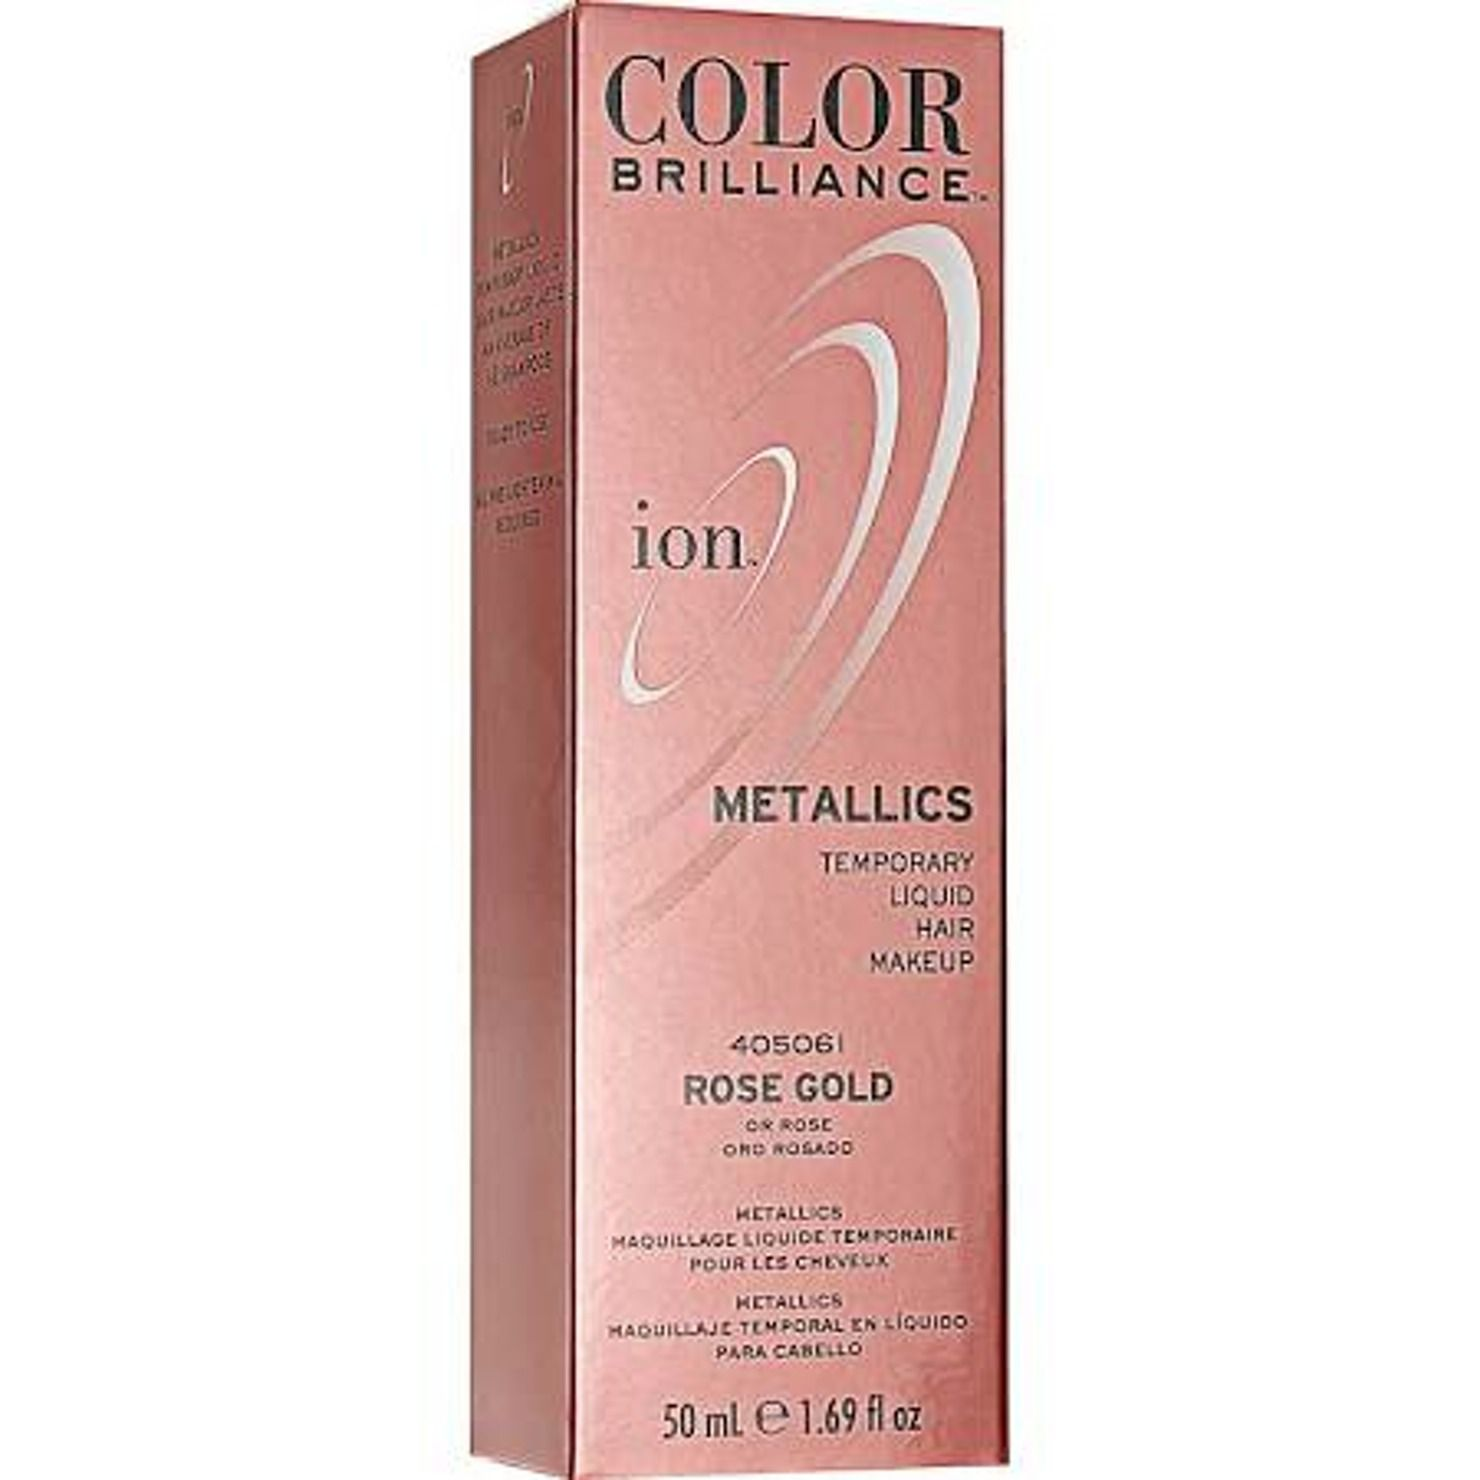 rose gold hair dyes you can use at home to get kylie jenner u0027s new